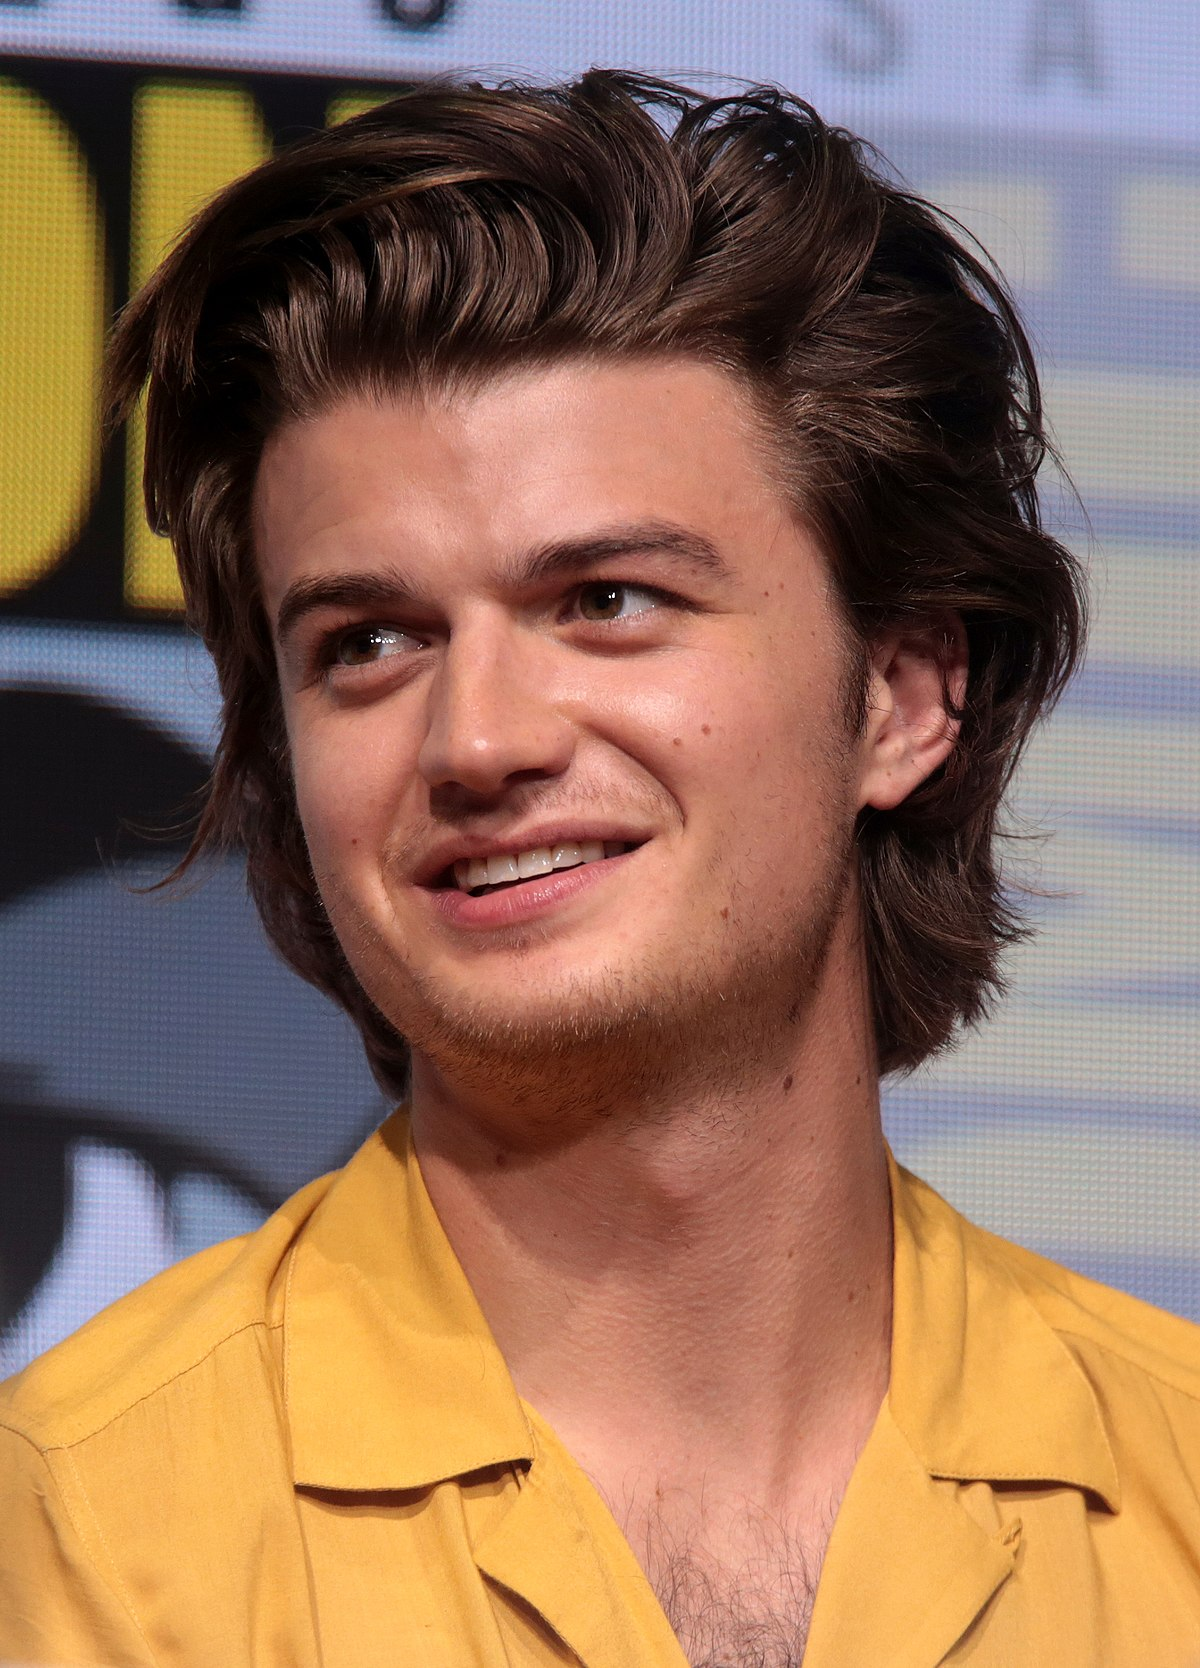 1200px-Joe_Keery_by_Gage_Skidmore.jpg